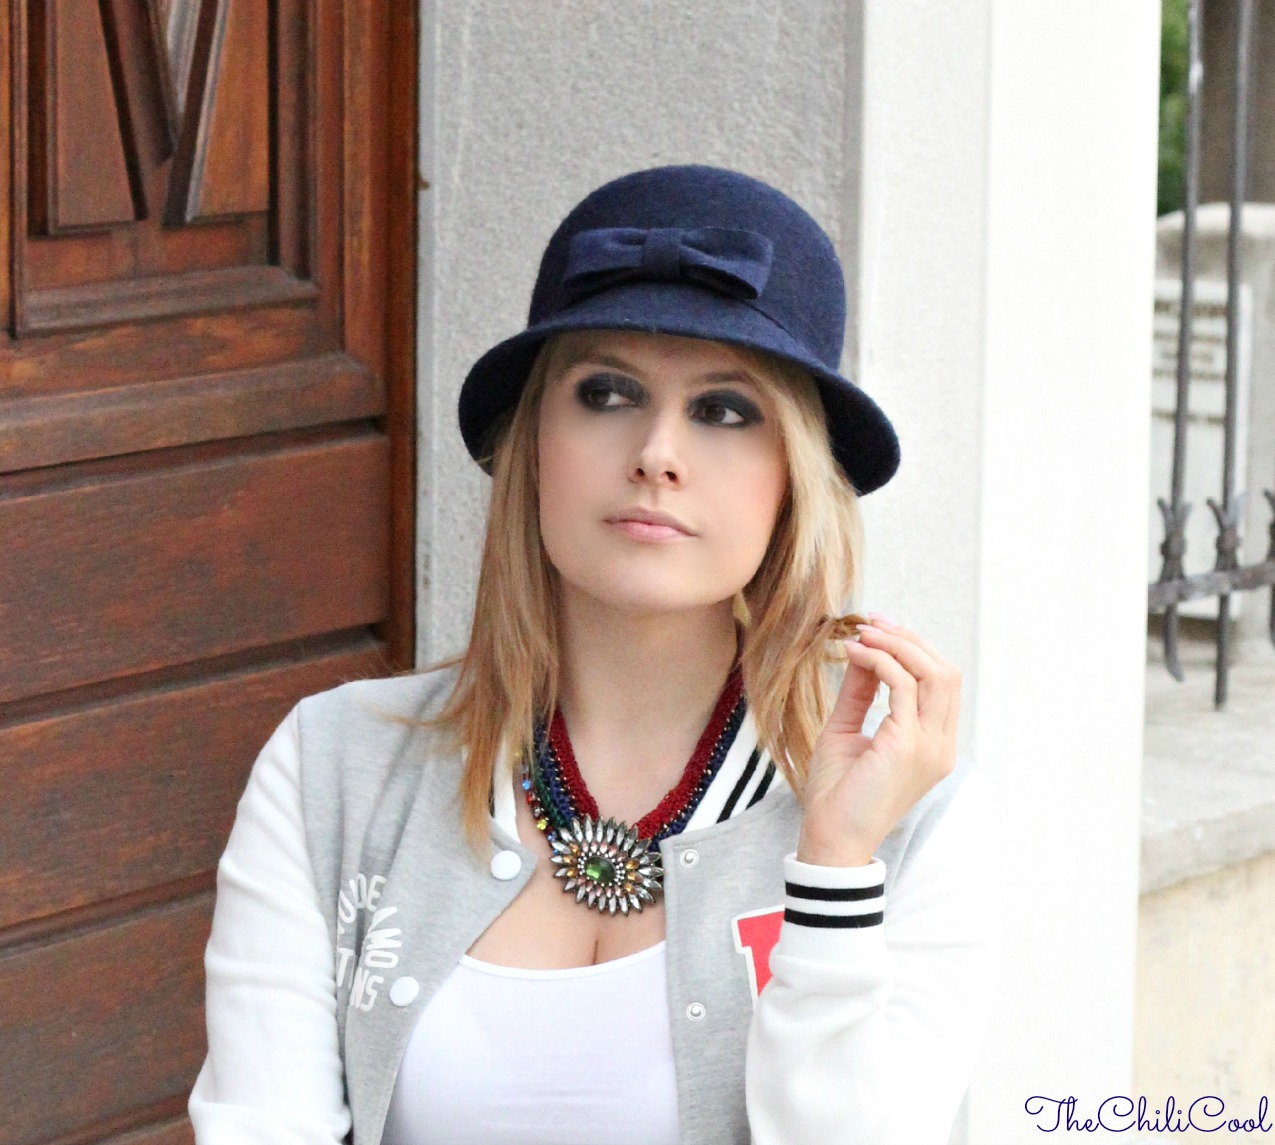 alessia milanese, thechilicool, fashion blog, fashion blogger, deep blue